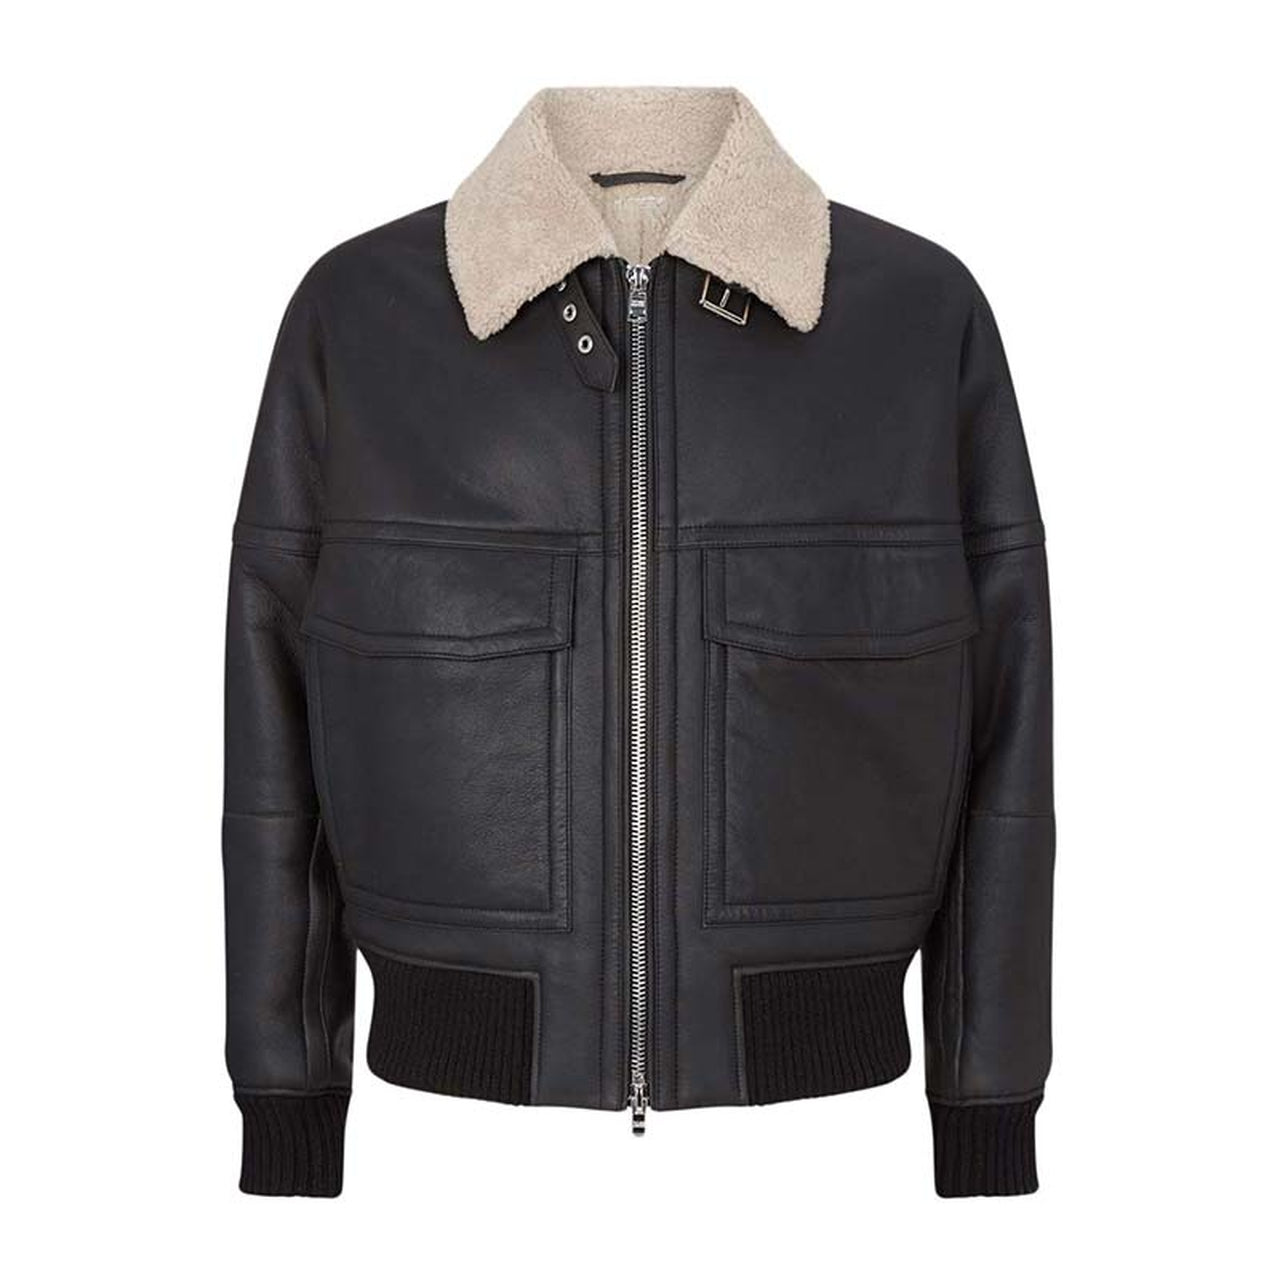 Black Shearling Bomber Leather Jacket for Men - Leather Jacket